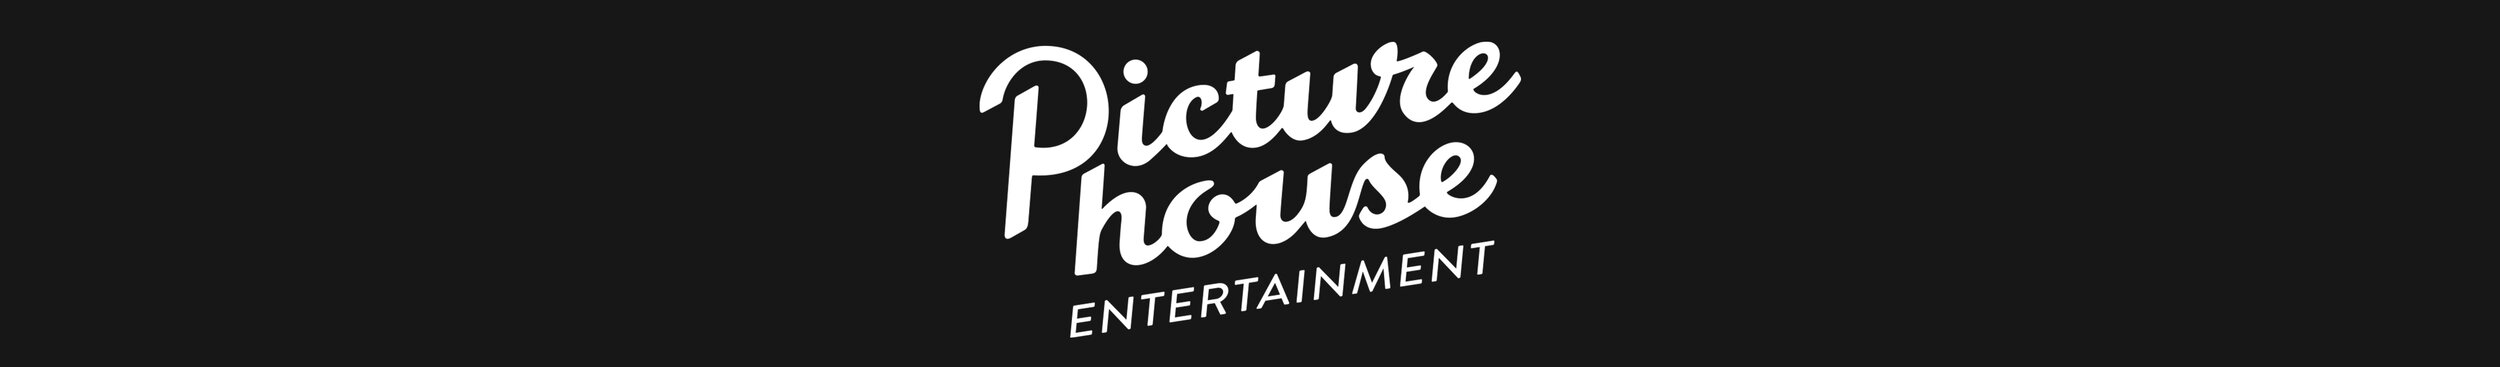 IntWebsite_Clients_White_Picturehouse.jpg